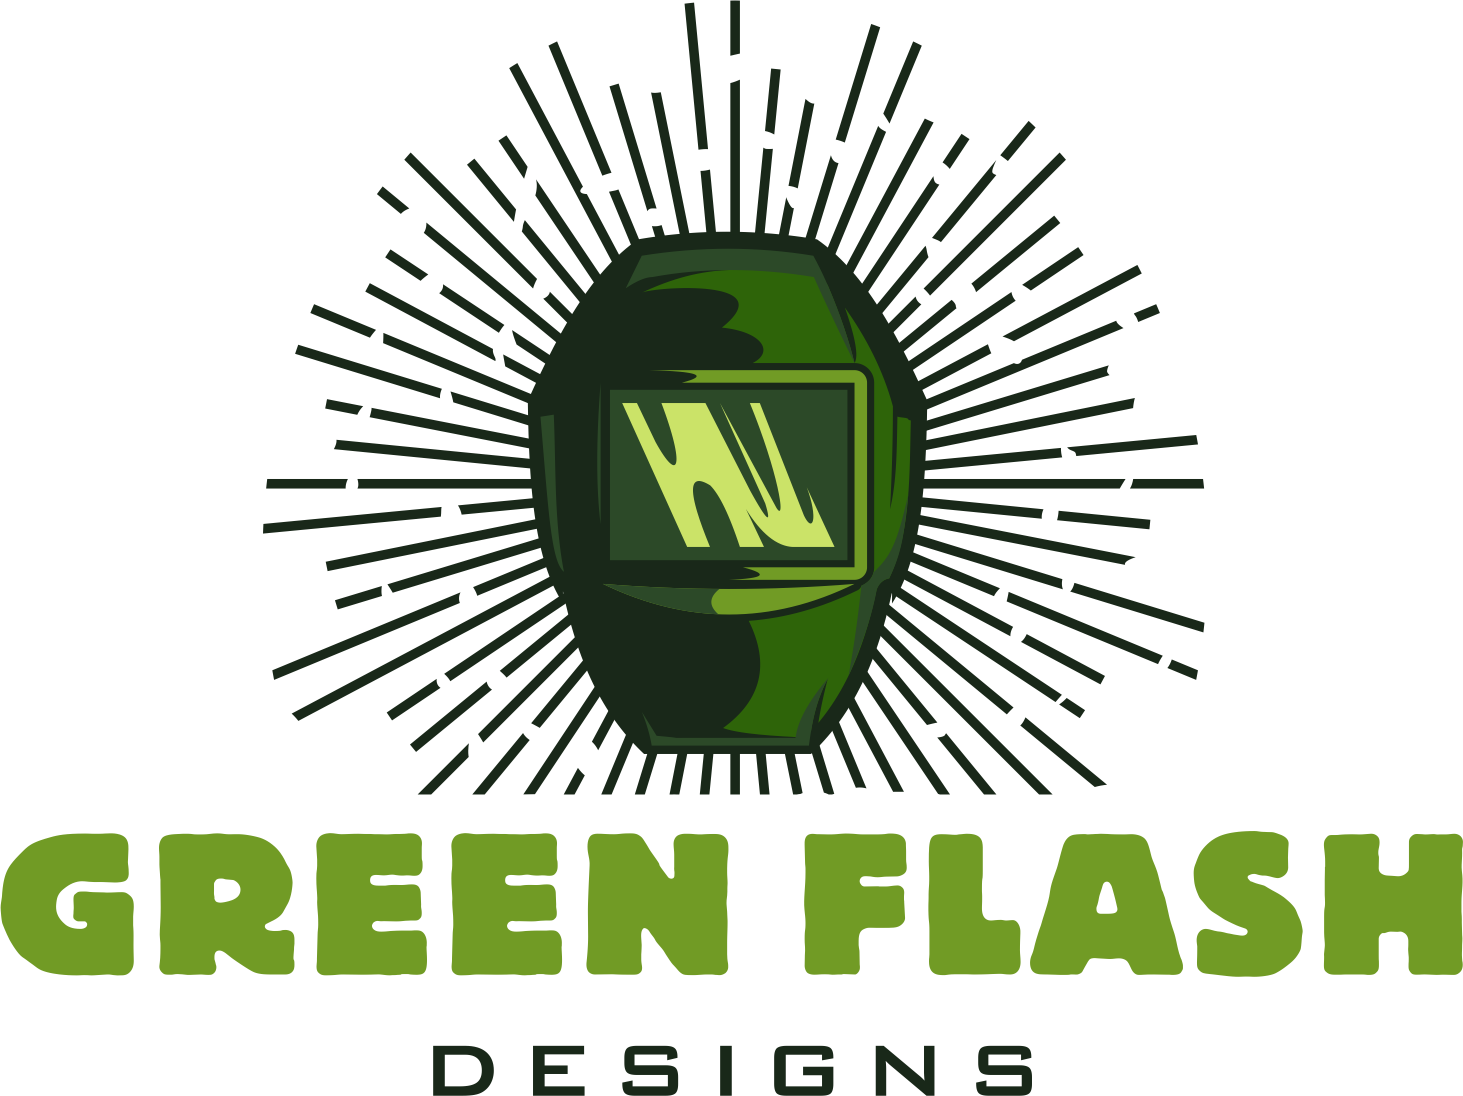 DESIGN a simple modern punk inspired logo for welding and fab shop